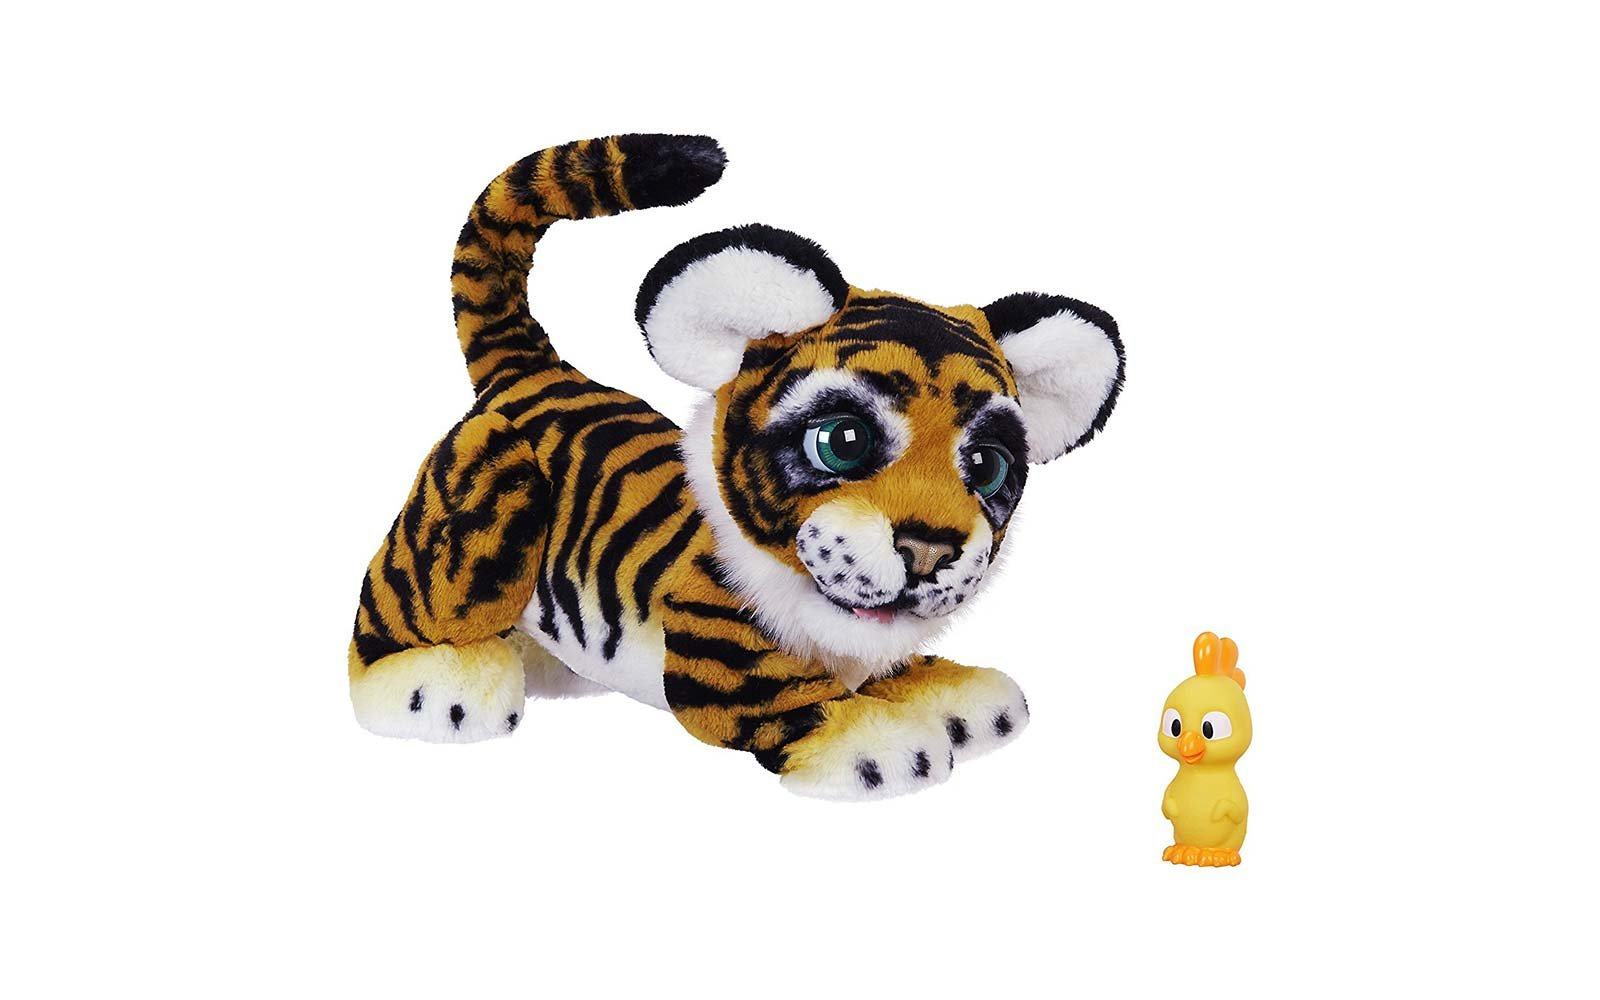 furreal roarin tyler playful tiger robotic doll toy